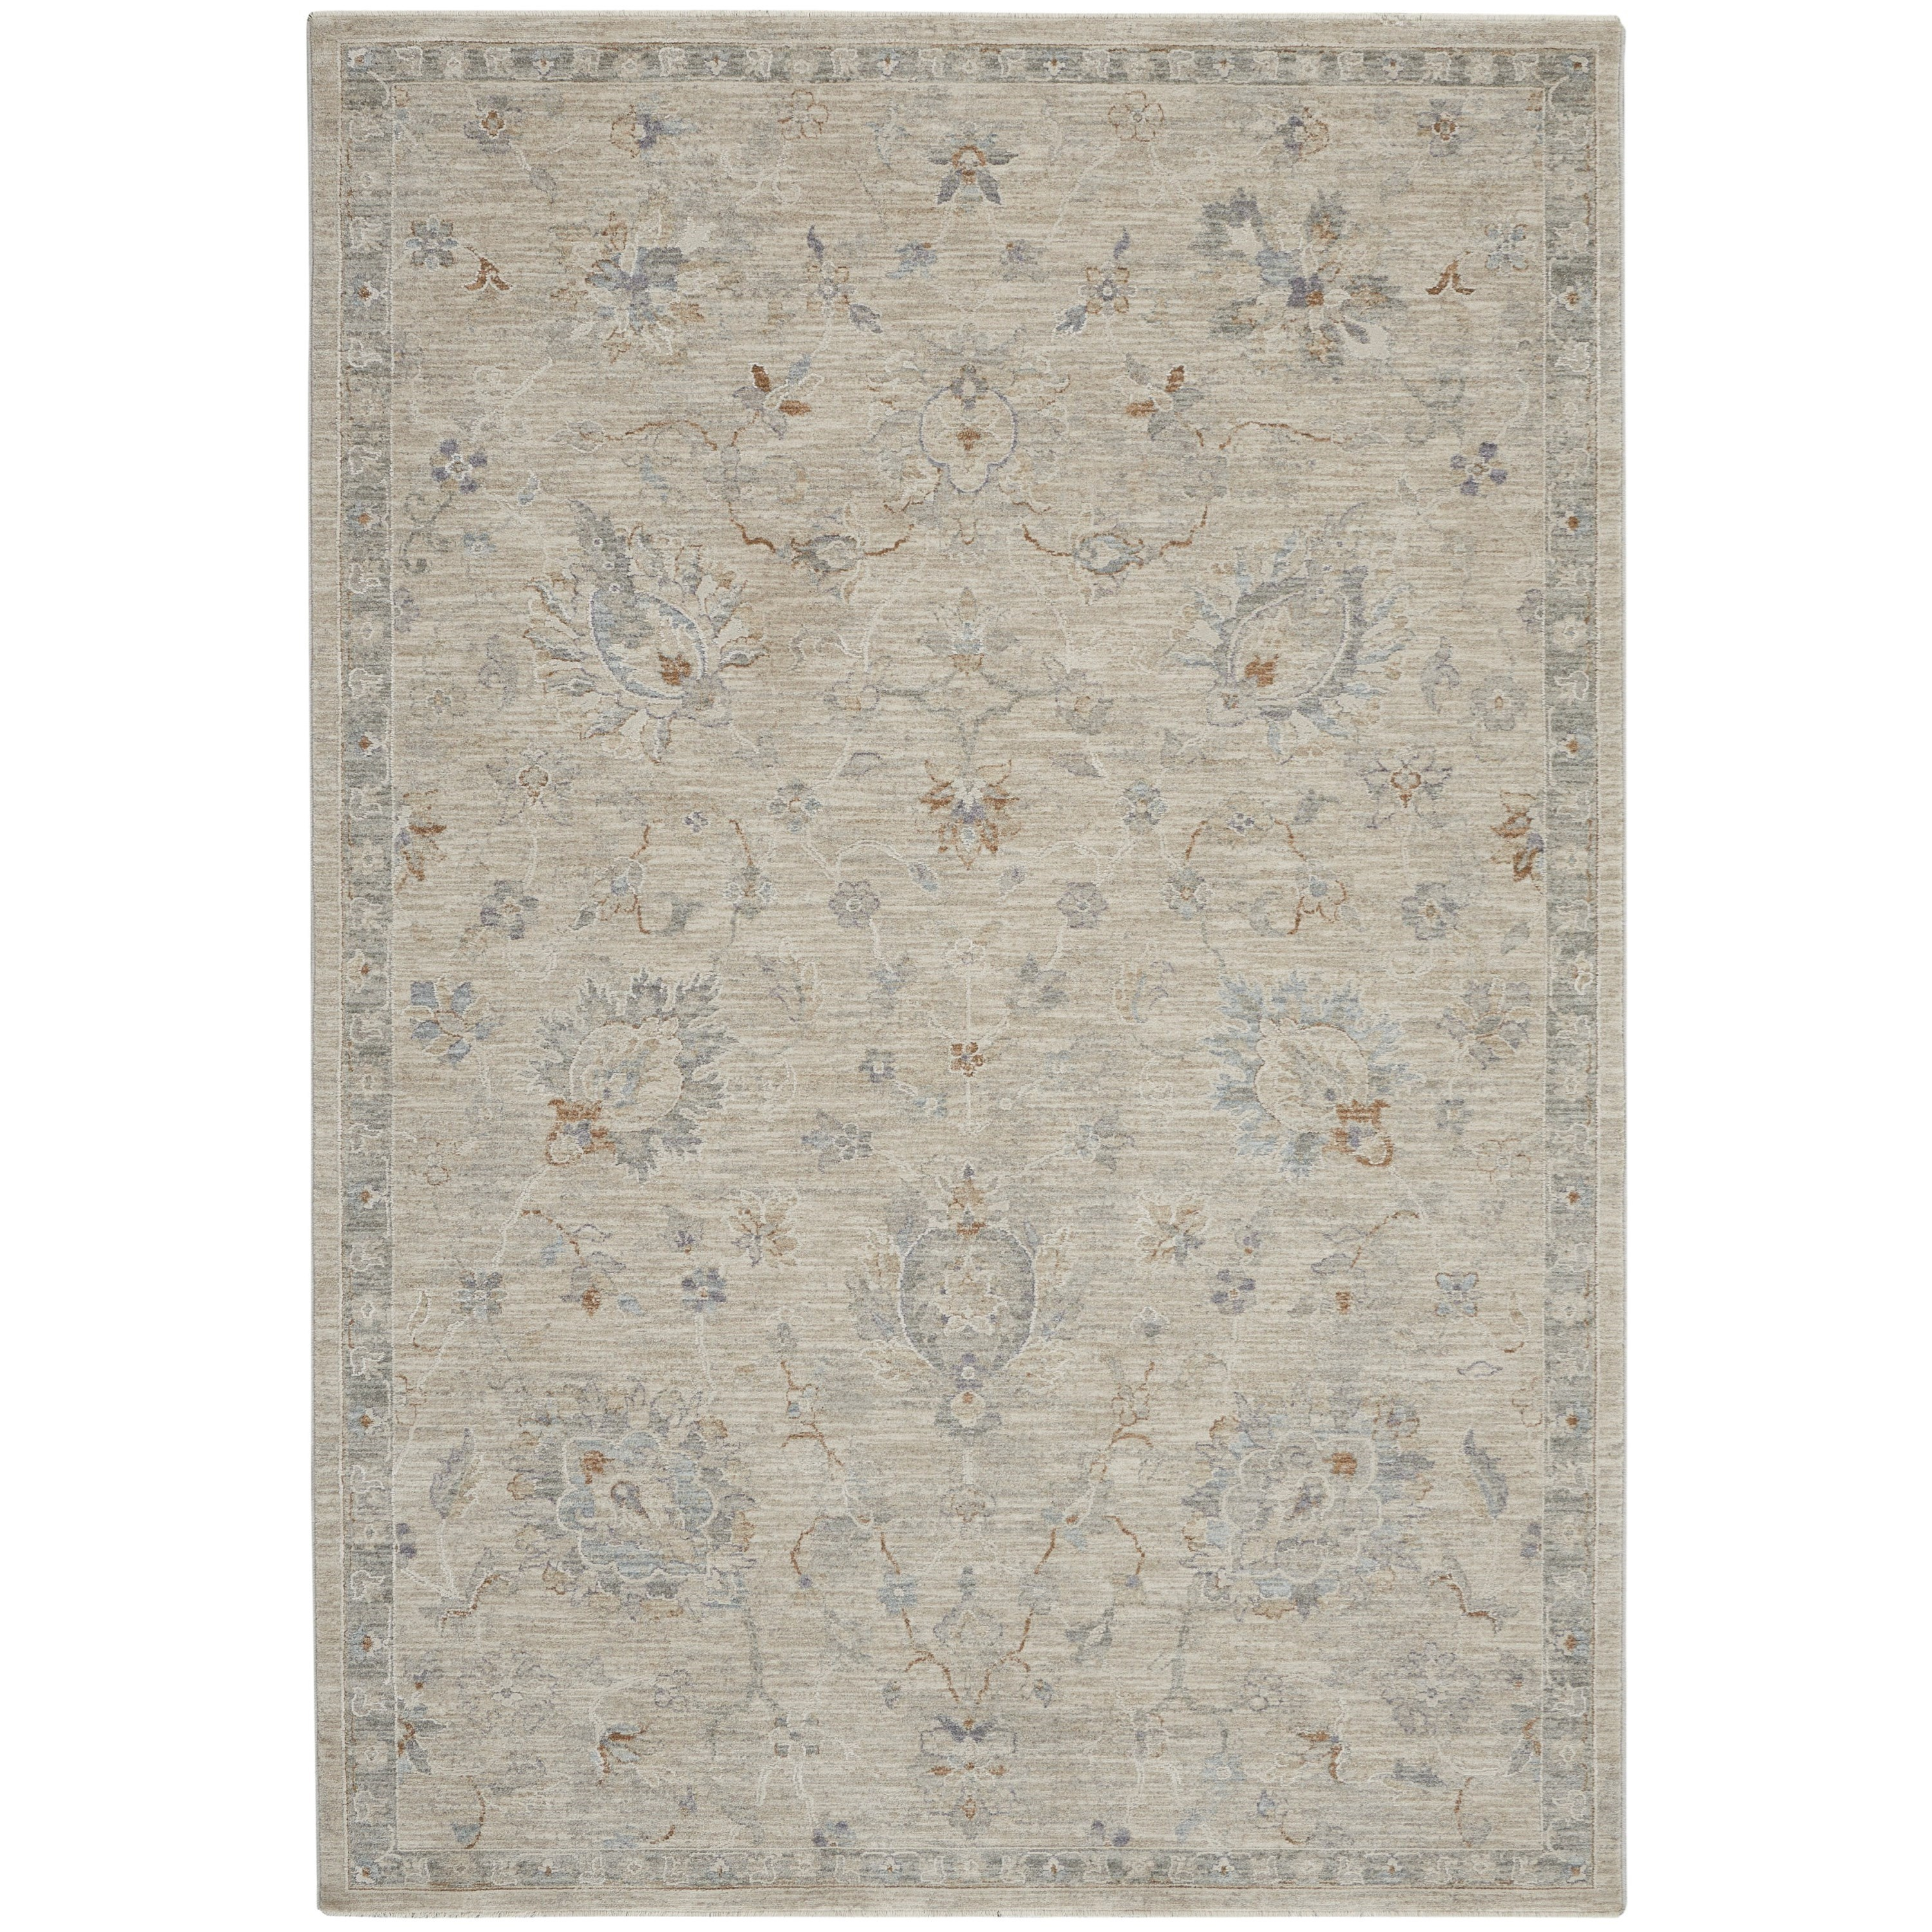 Infinite 2020 4' x 6' Rug by Nourison at Home Collections Furniture